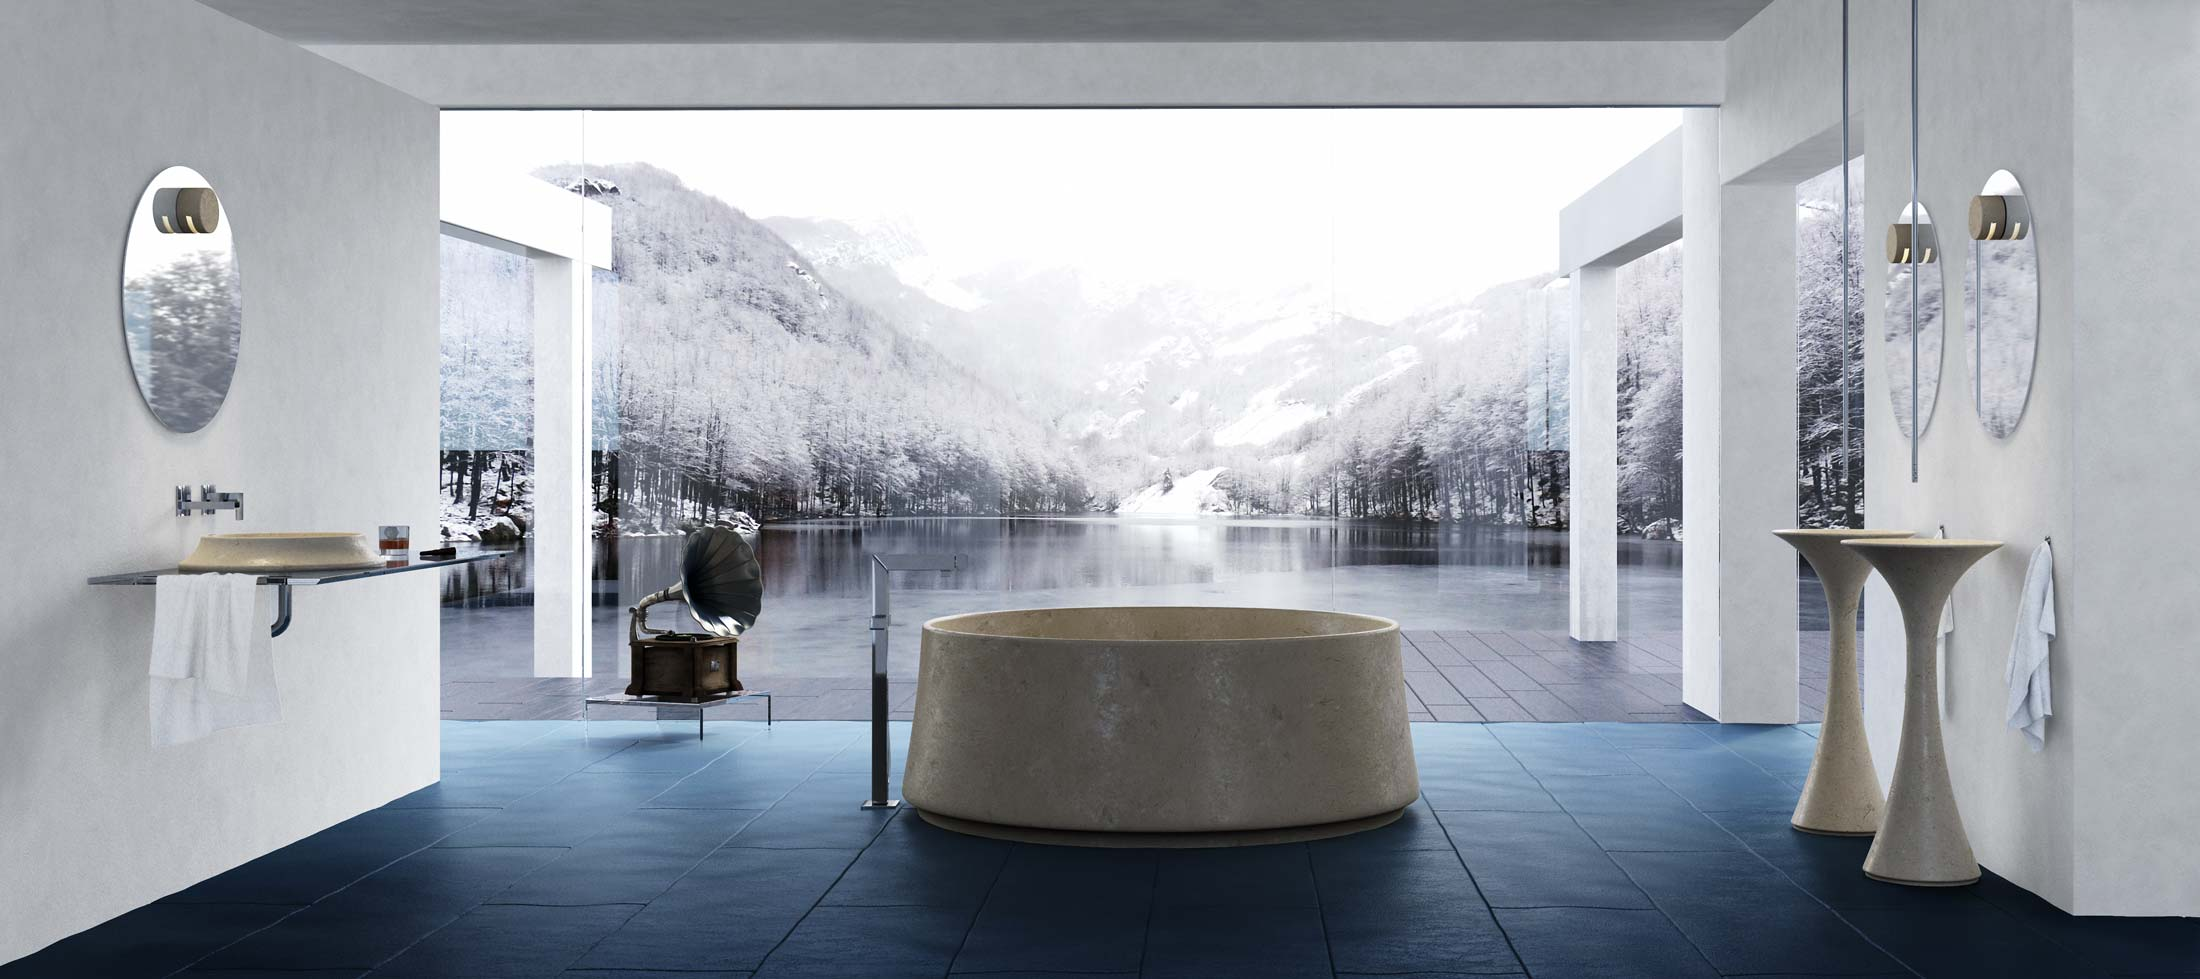 https://www.dedalostone.com/wp-content/uploads/2018/04/bathroom-lightnened-marble-furnishing-collection-lune-washbasin-bathtube-shower-tray.jpg